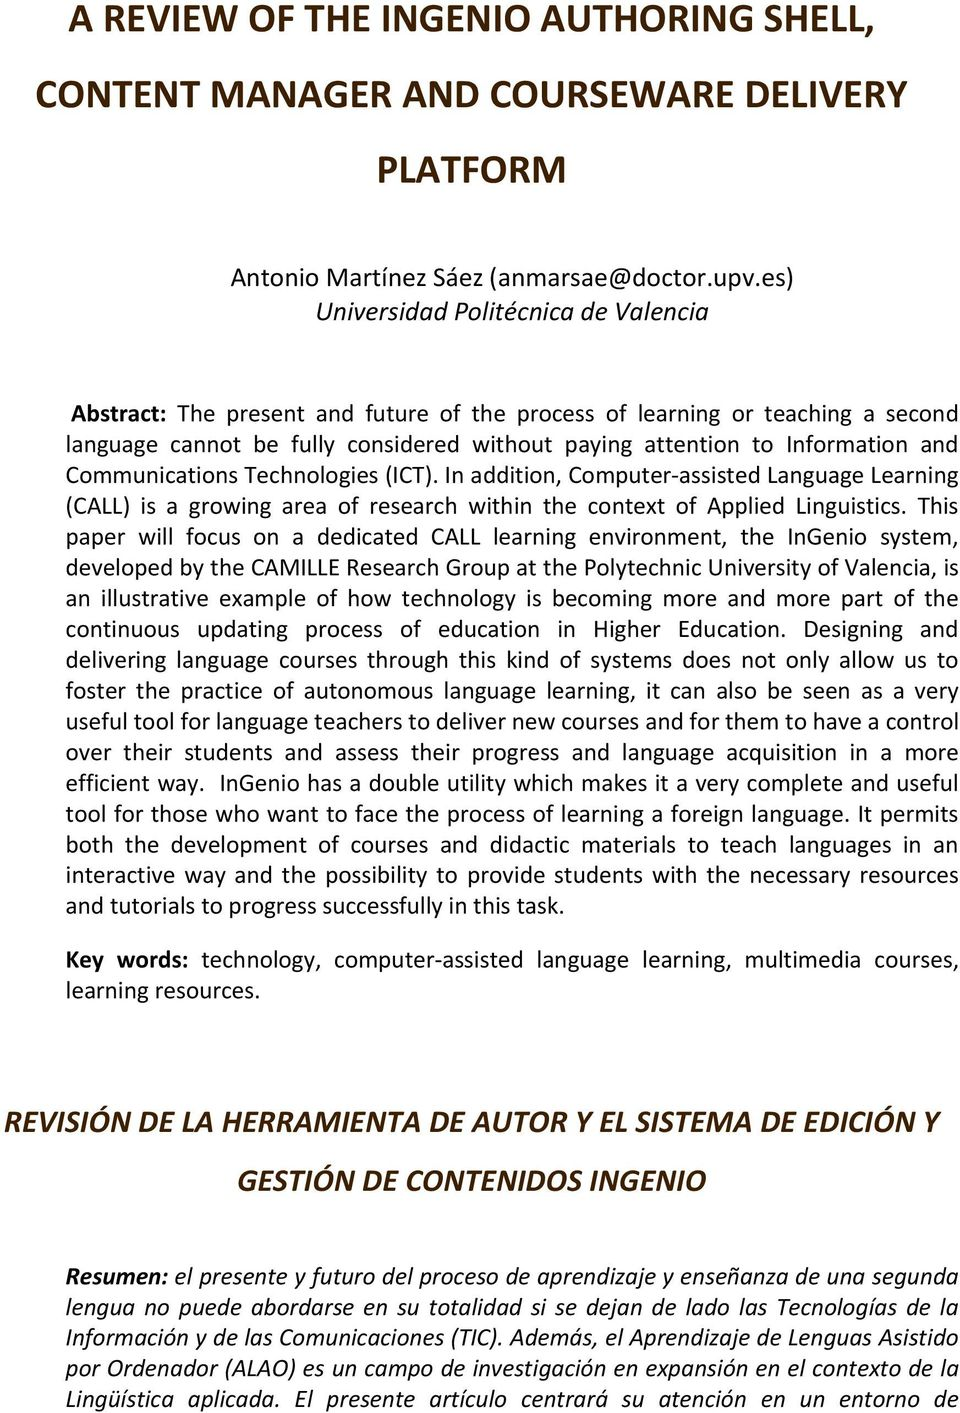 and Communications Technologies (ICT). In addition, Computer-assisted Language Learning (CALL) is a growing area of research within the context of Applied Linguistics.